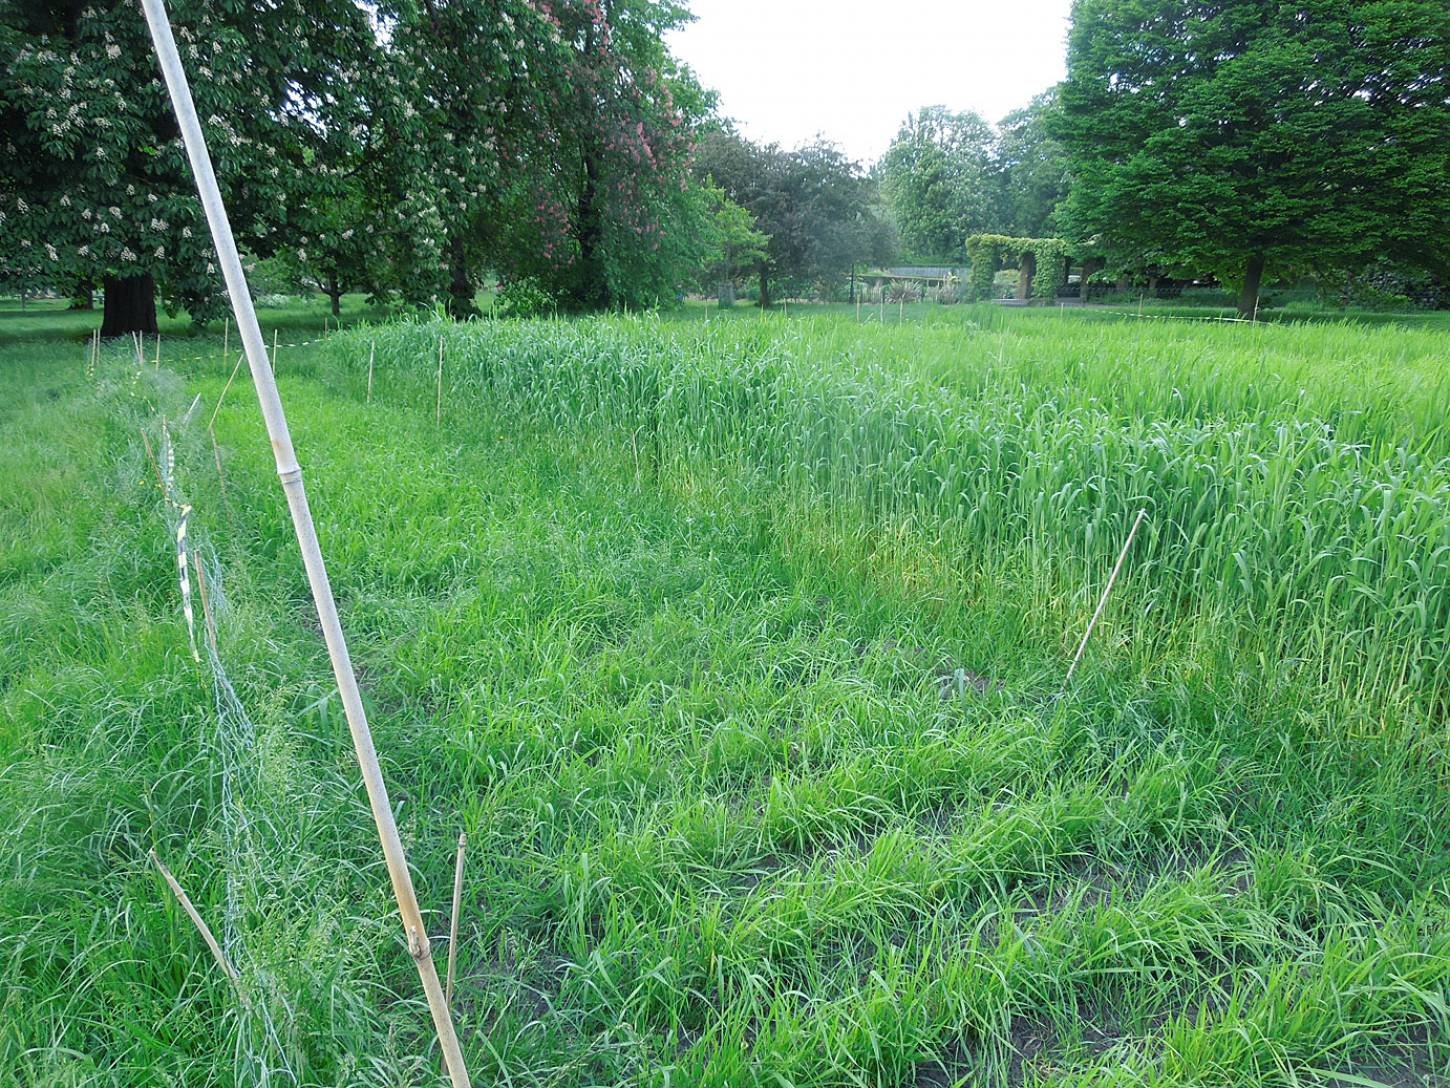 Blue Cone Rivet starting to head with flag leaves, Ruskin Park wheat review #1 - 5:42pm&nbsp;24<sup>th</sup>&nbsp;May.&nbsp;'16